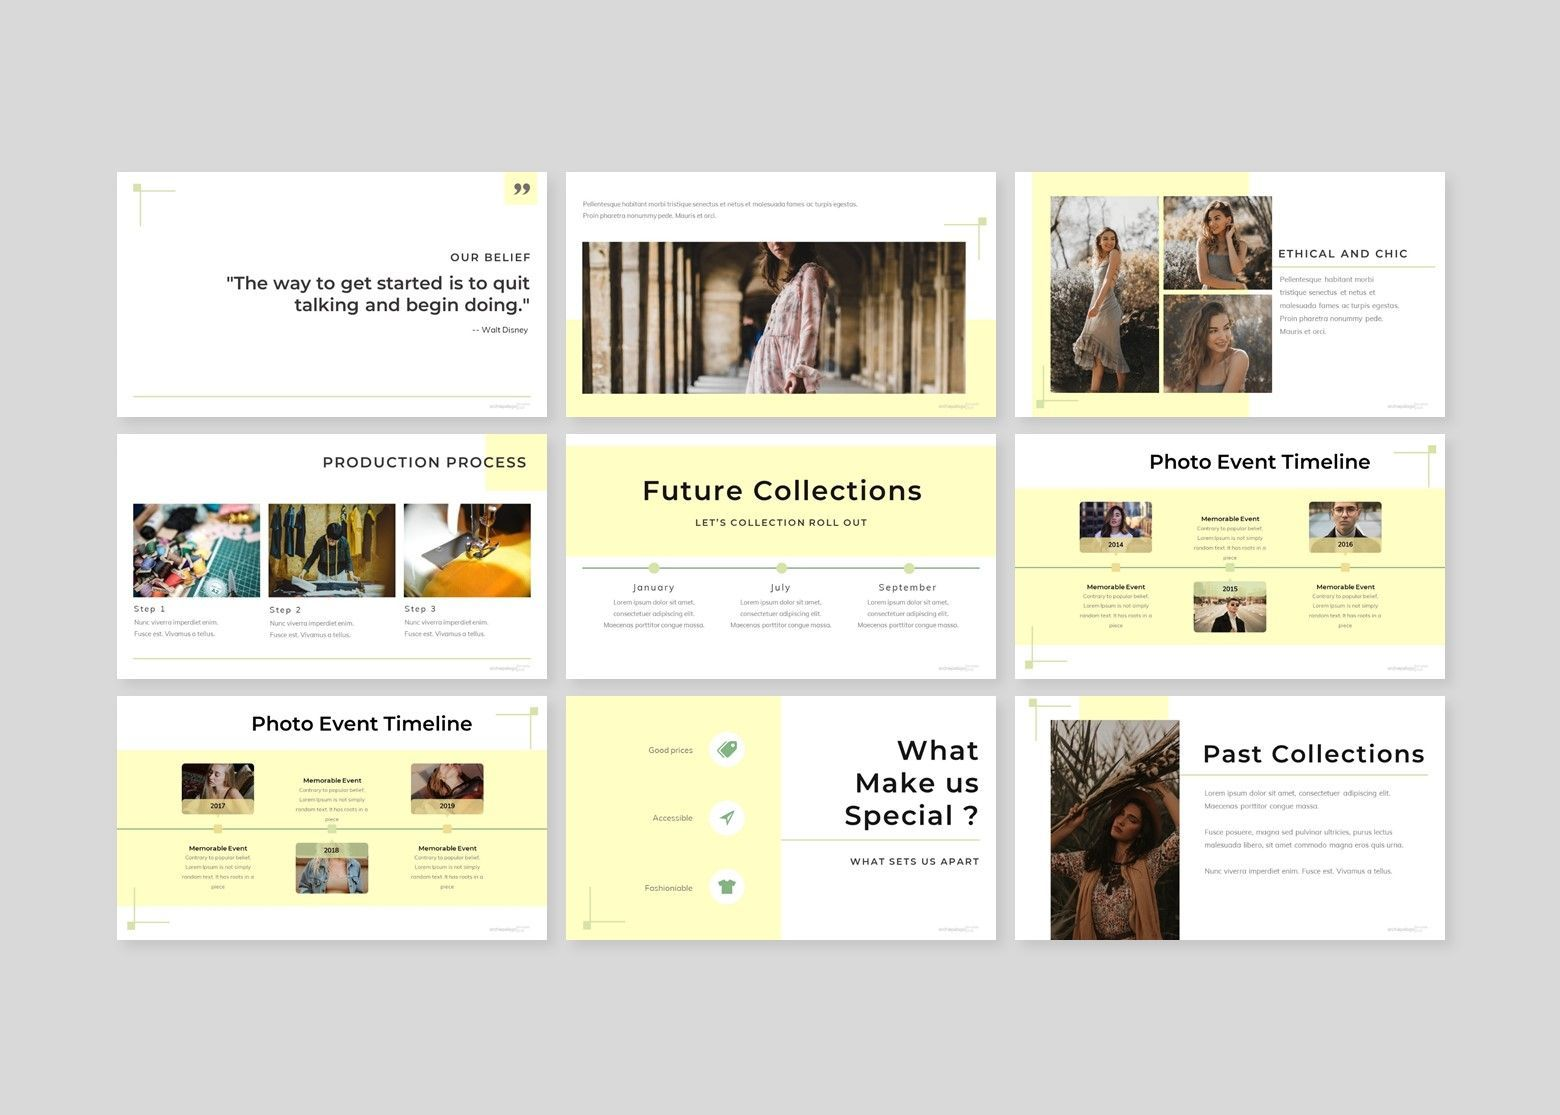 Archiepelago - Google Slides Template, Slide 3, 07701, Presentation Templates — PoweredTemplate.com